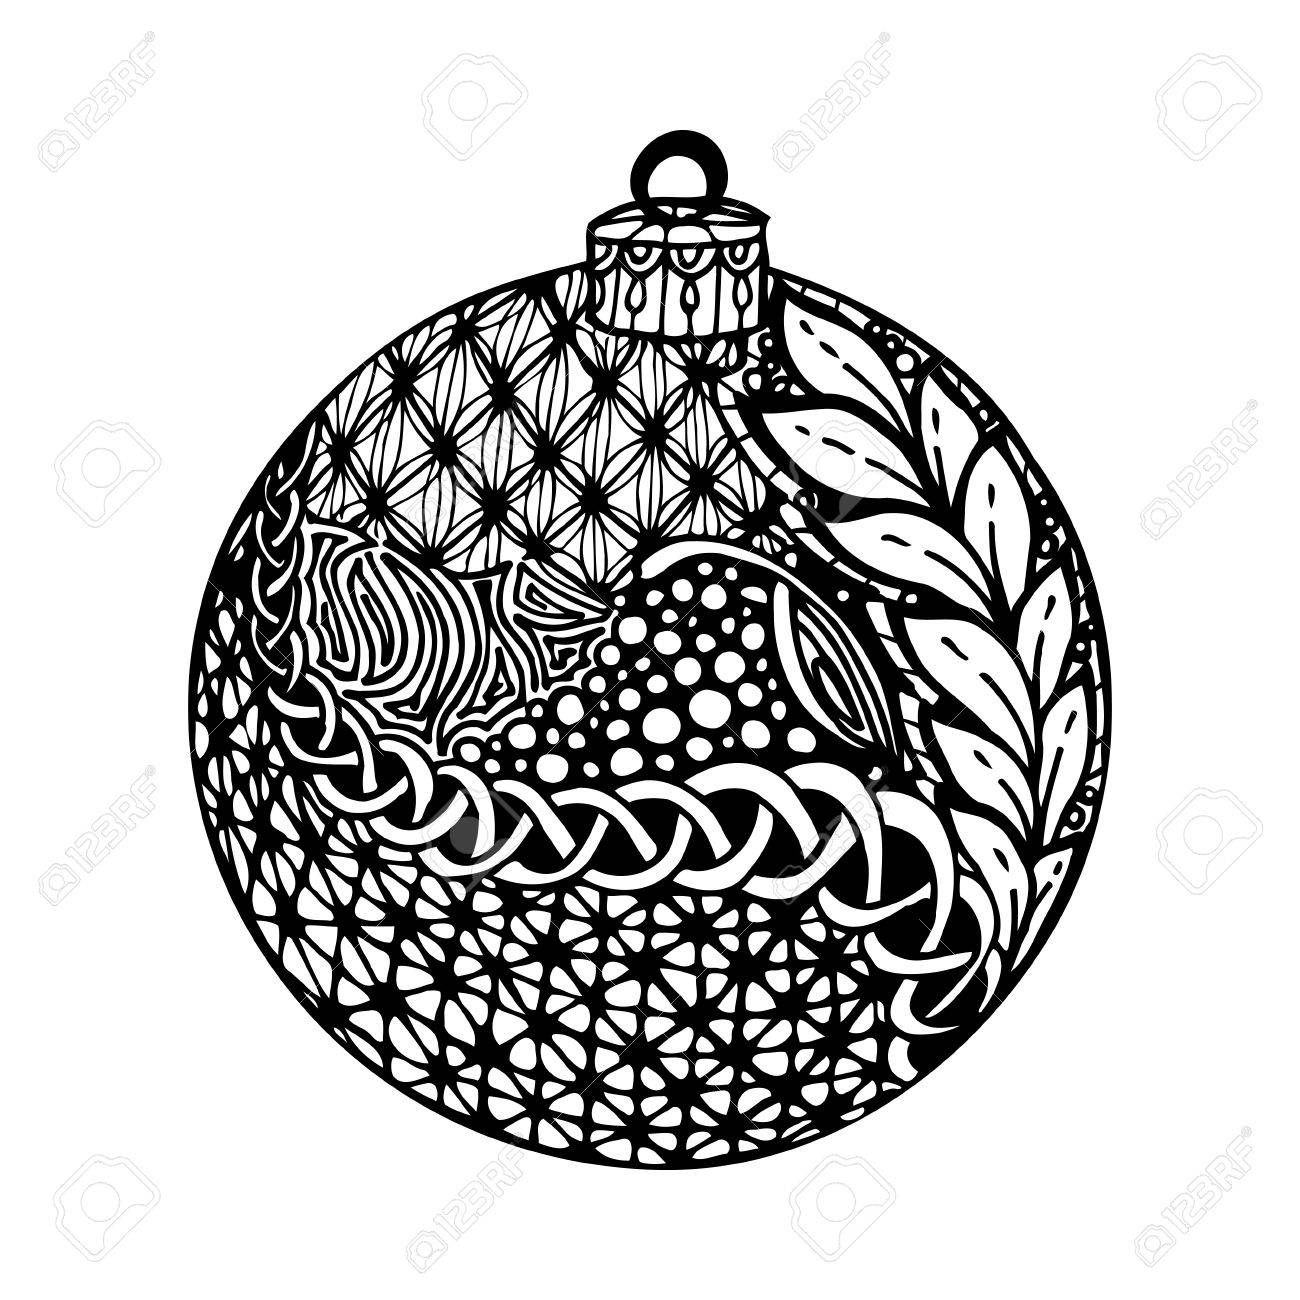 Beautiful Monochrome Black And White Christmas Ball Hand Drawn Design For Background Holiday